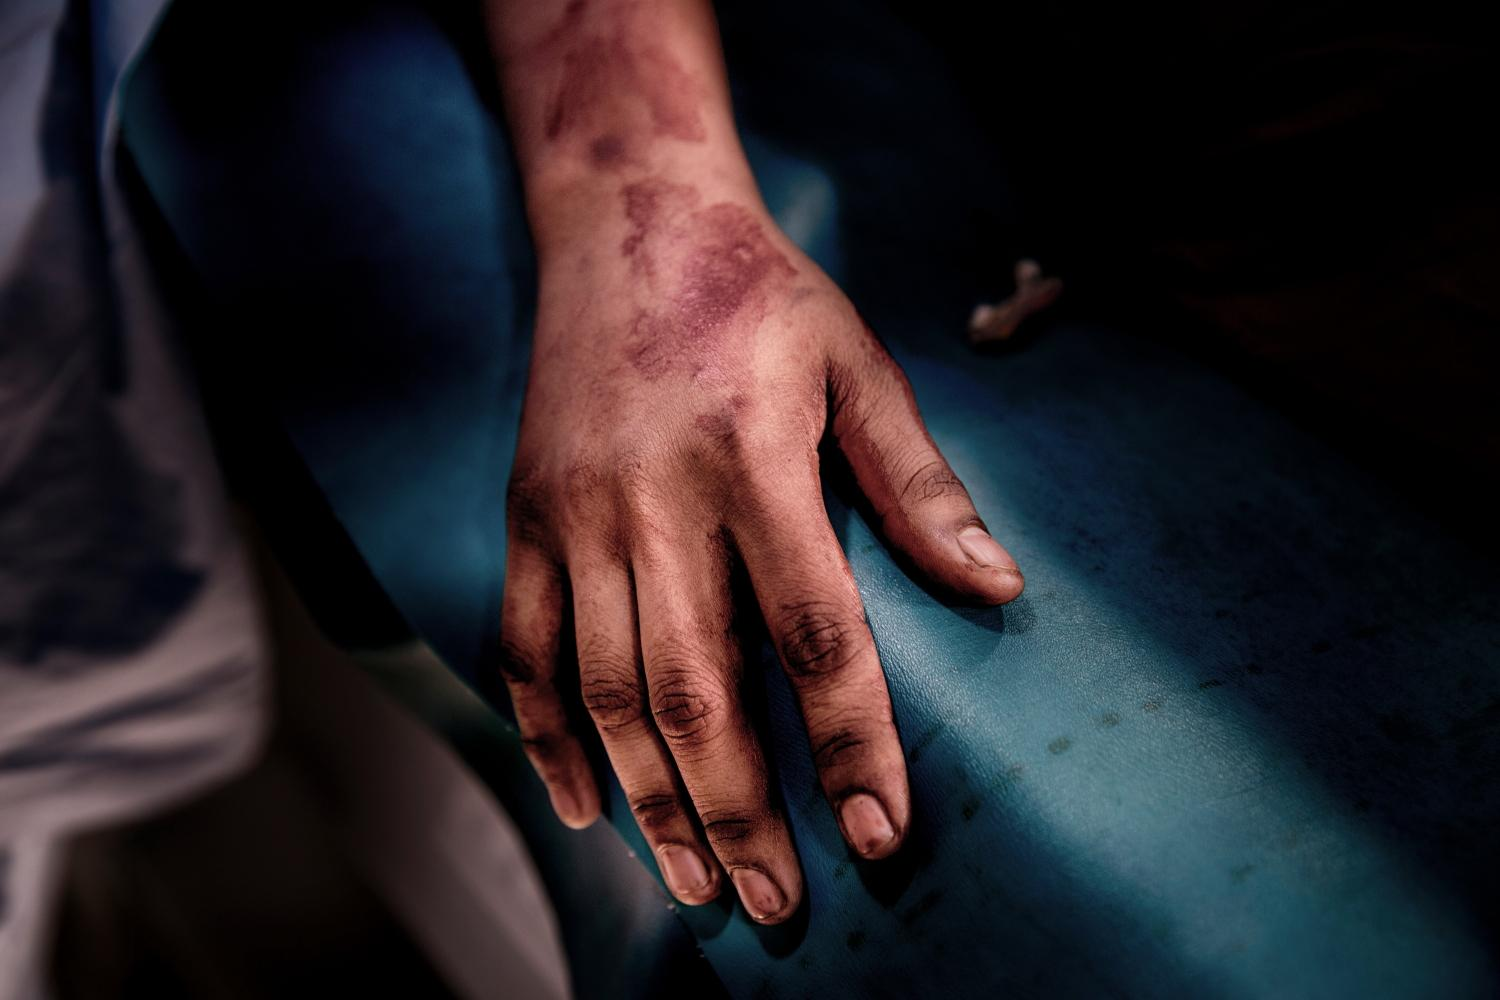 Hands of Bobita in an emergency room at Tongi industrial zone. Female textile workers routinely face gender-based violence and exploitation. Bobita did not call to her parents. She does not want their villagers speak ill about her profession. She says, 'If they know what happened to me, they will lose their mind. I do not want to go back and depend on my old father.' Tongi, Bangladesh